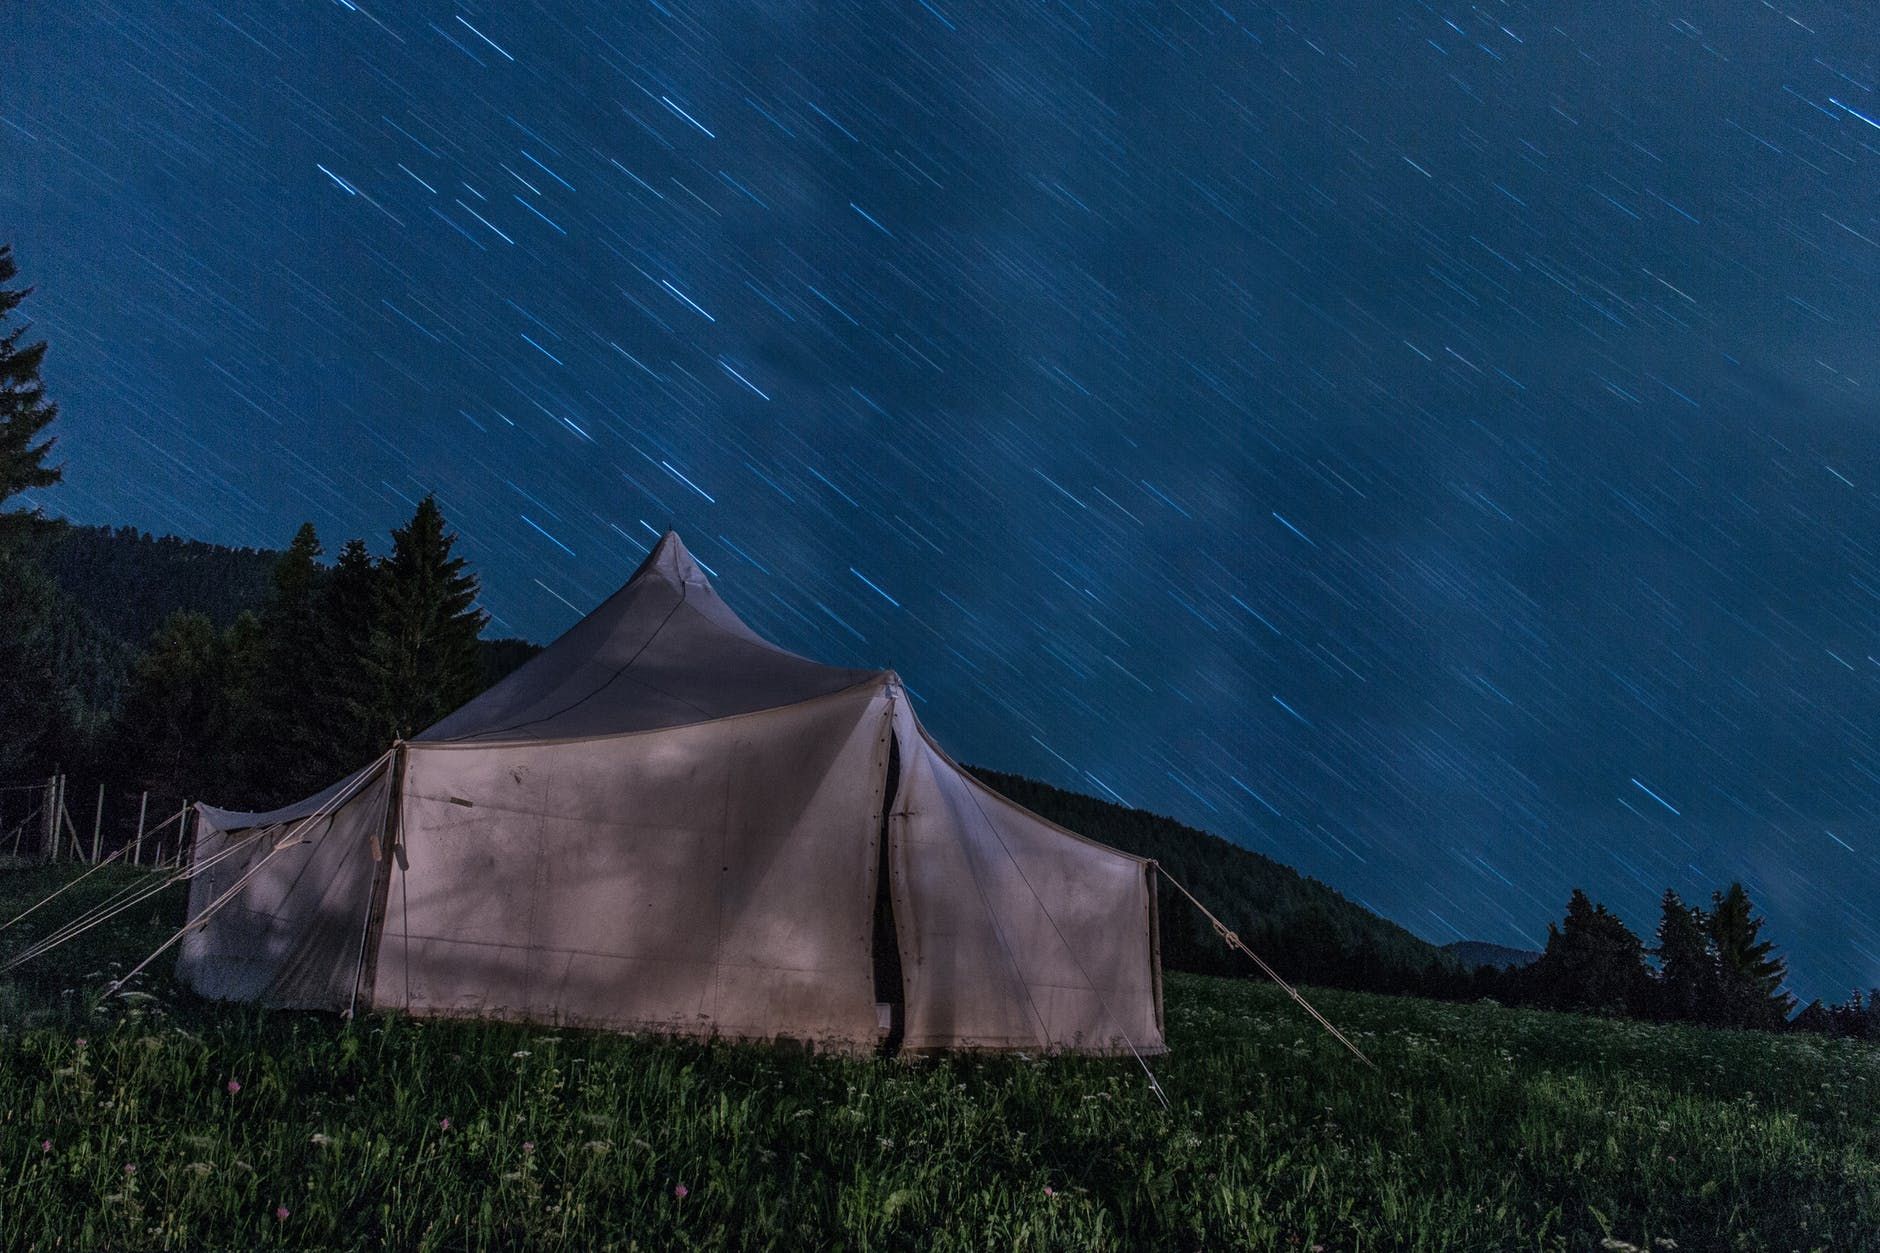 Lifestyle Glitz - Camping in Rainy Weather